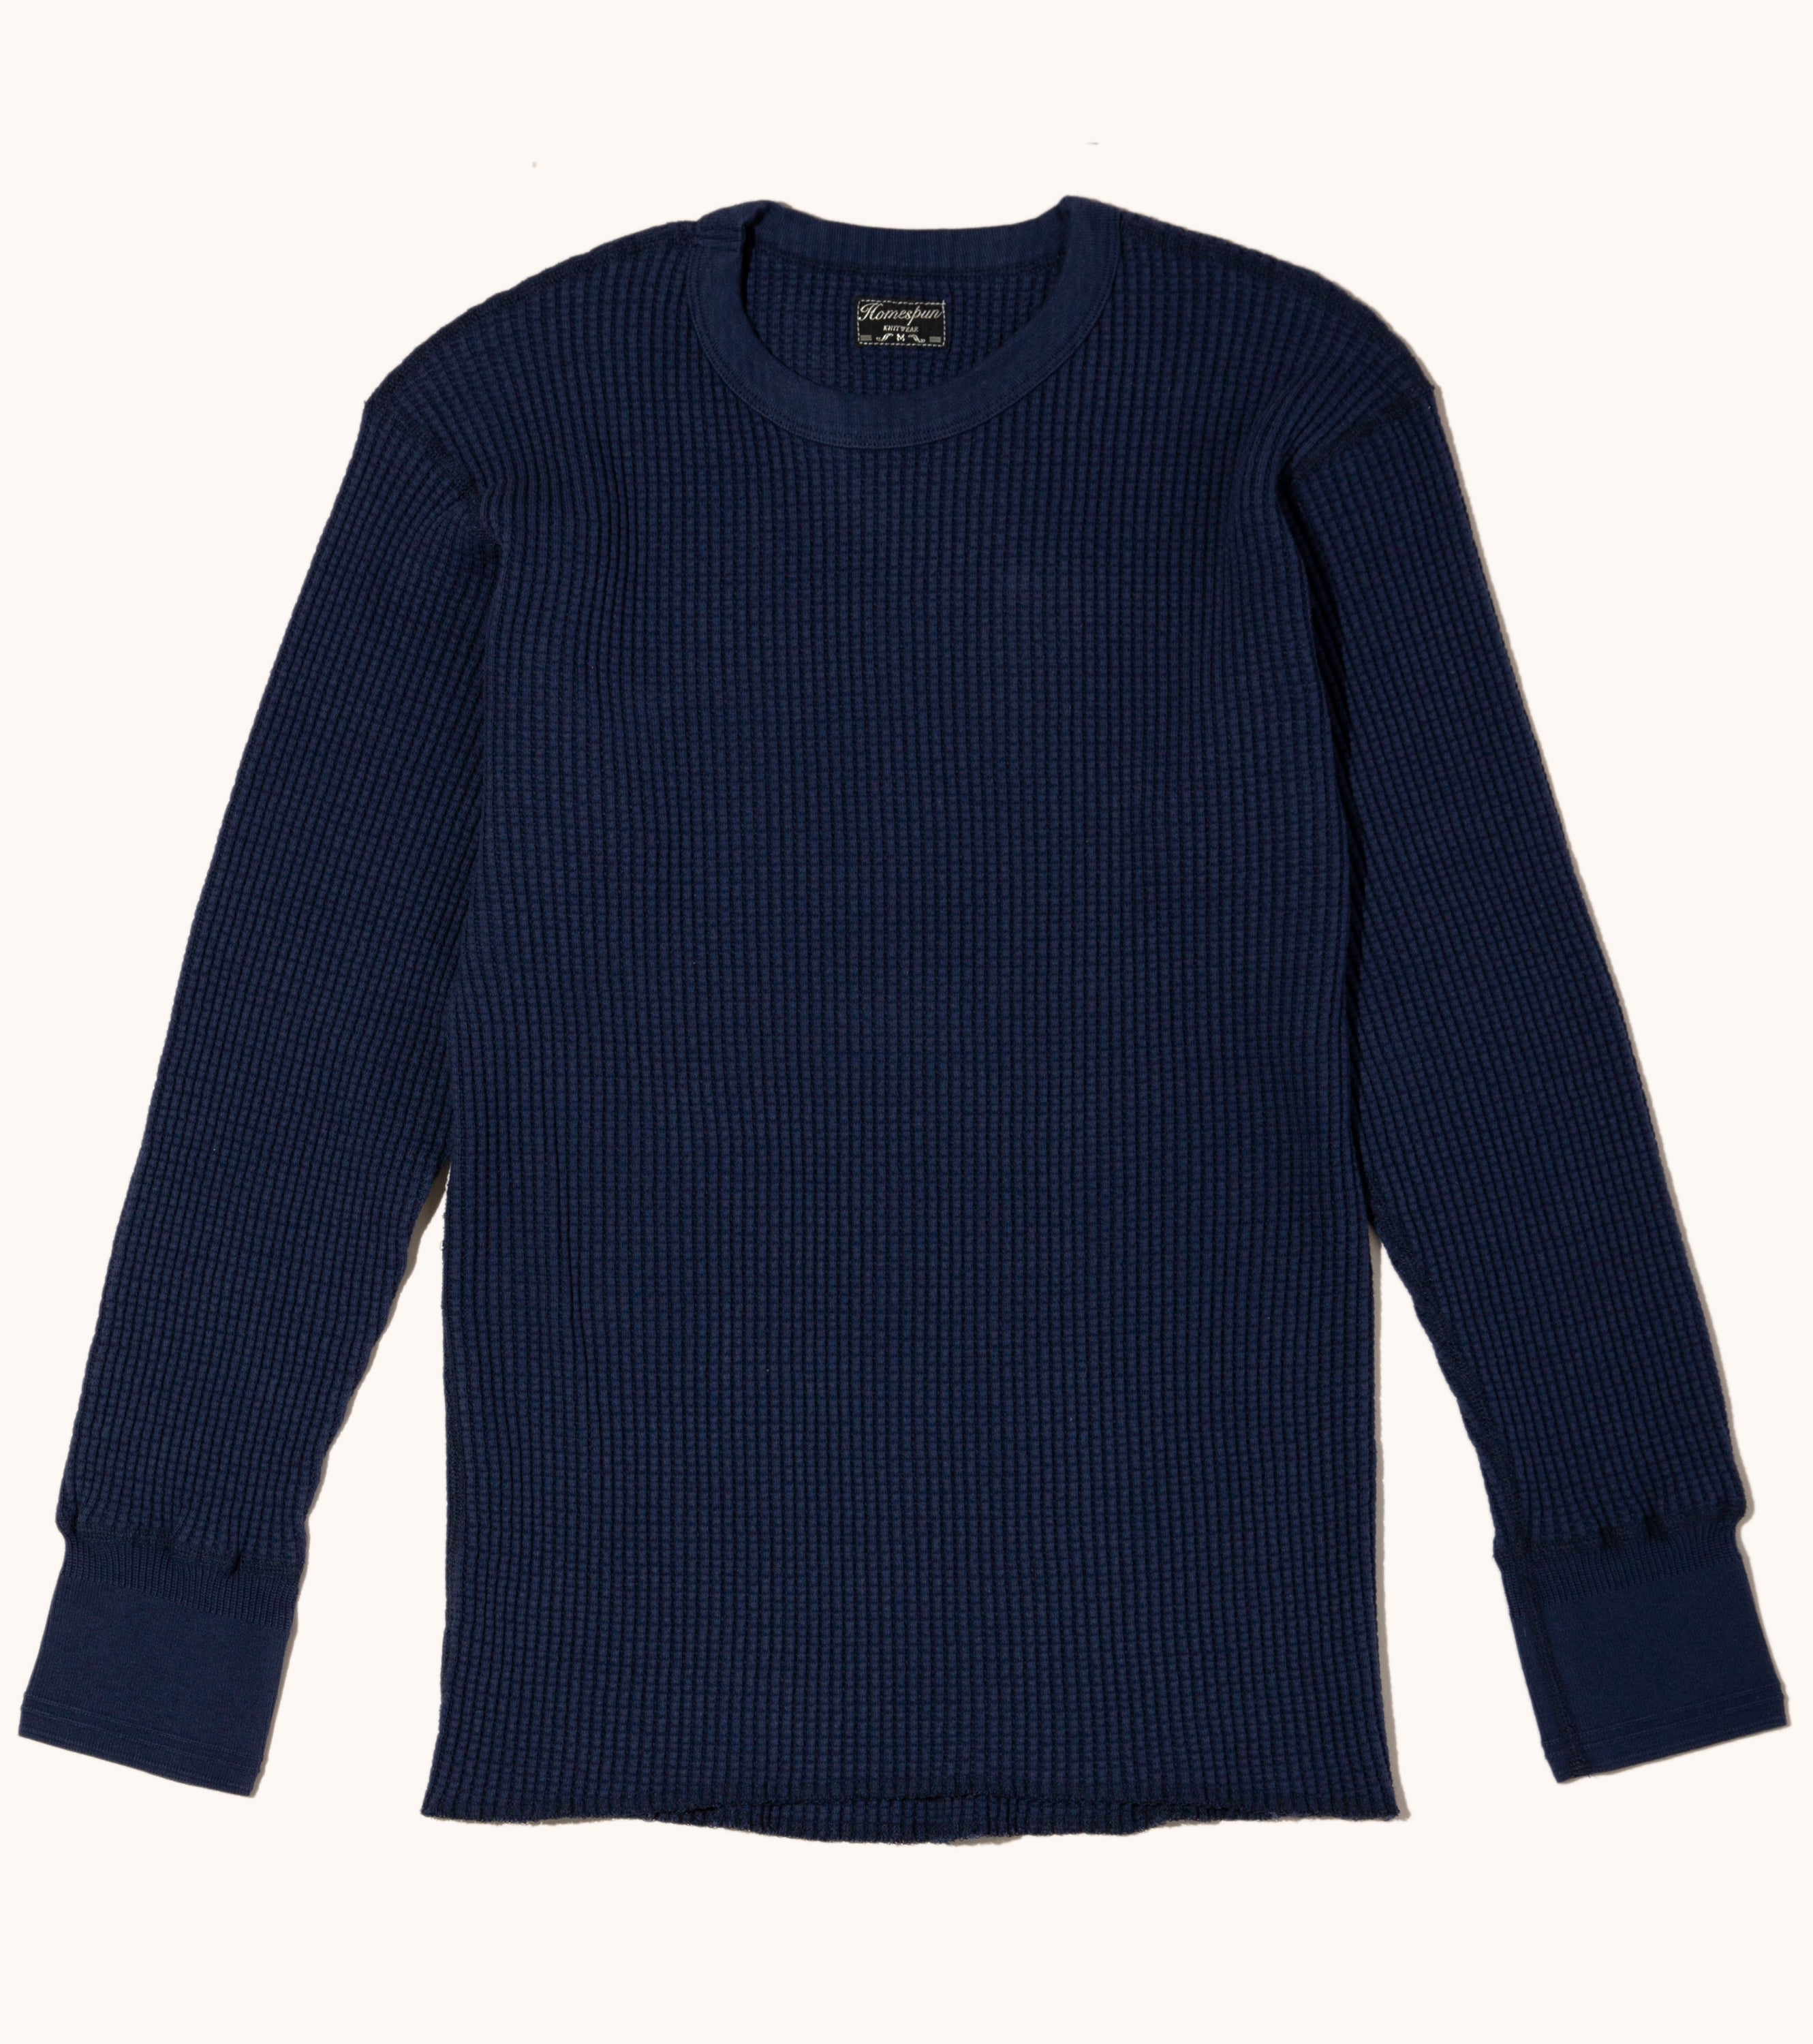 Best men's thermal shirts